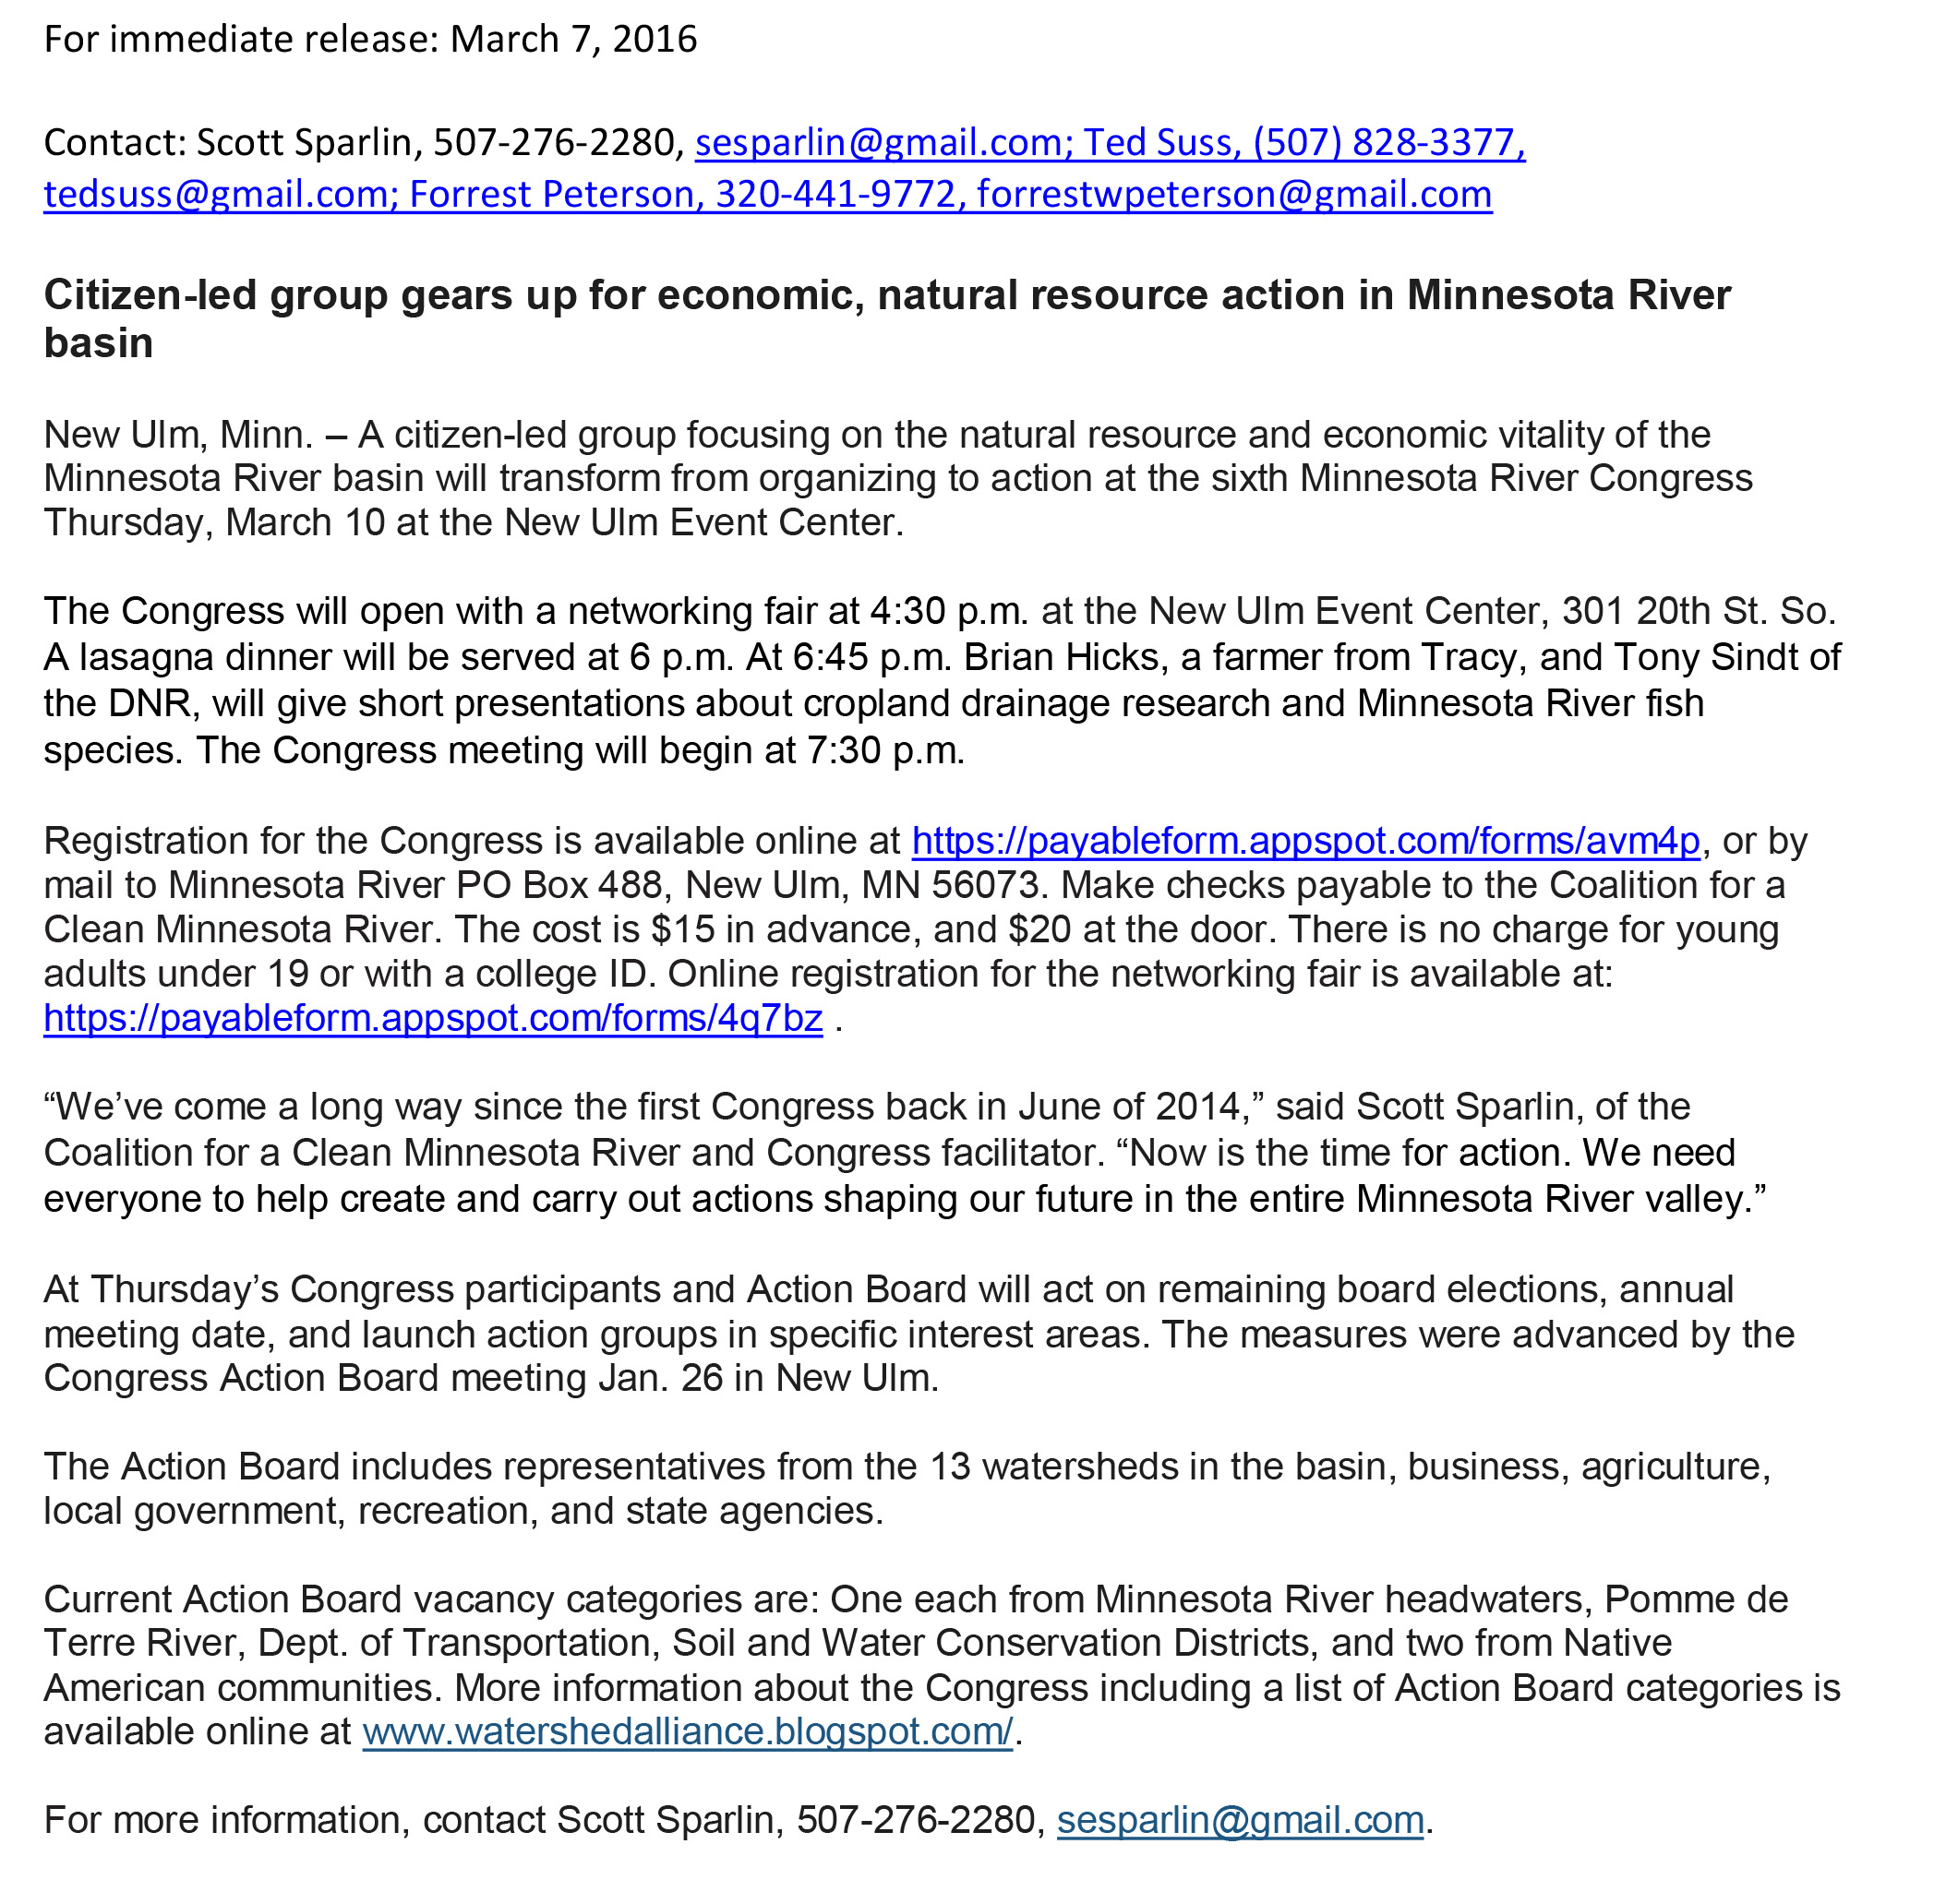 03072016News release - Minnesota River Congress March 10